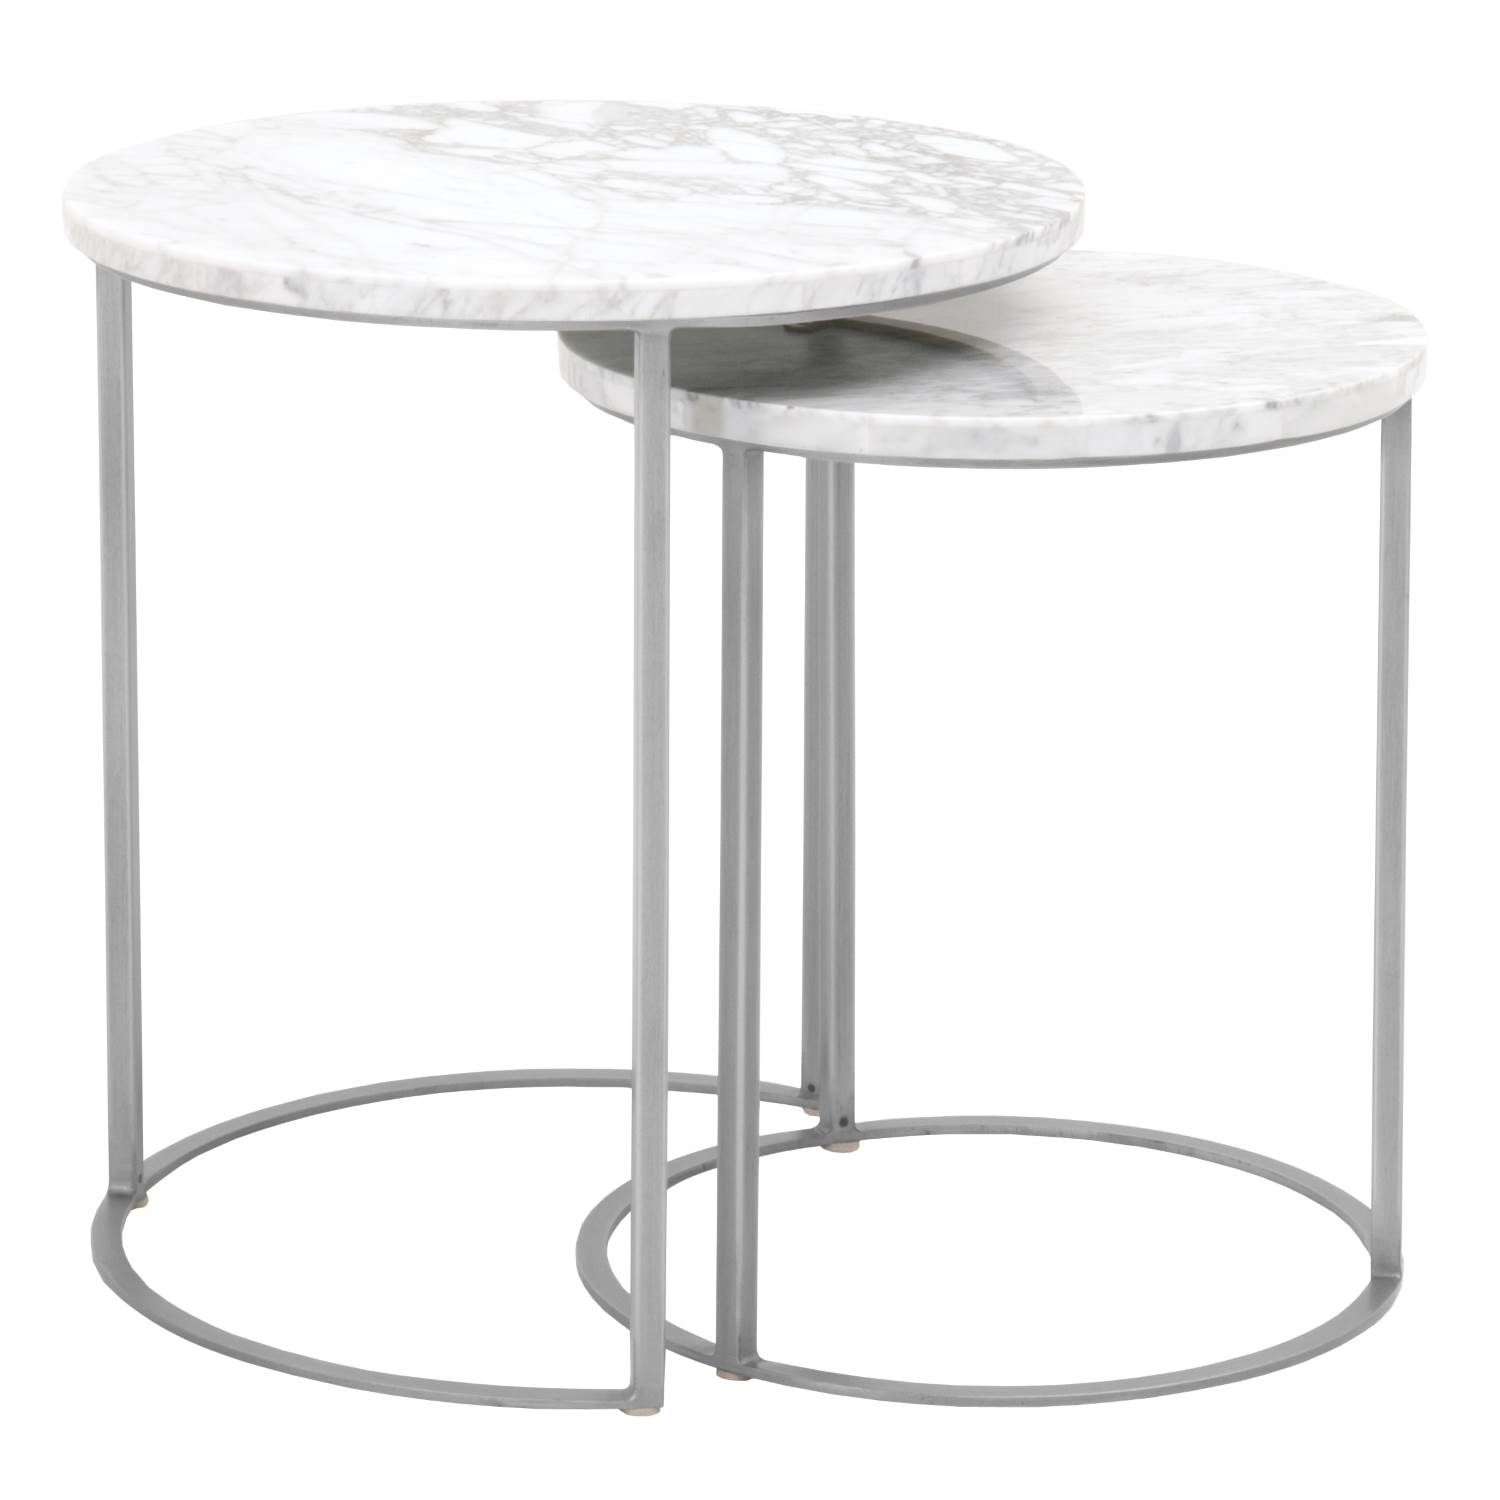 carrera round nesting accent table brushed stainless steel grey cbm mini end metal coffee pink marble hammered top over the couch threshold parquet triangle nightstand tiffany